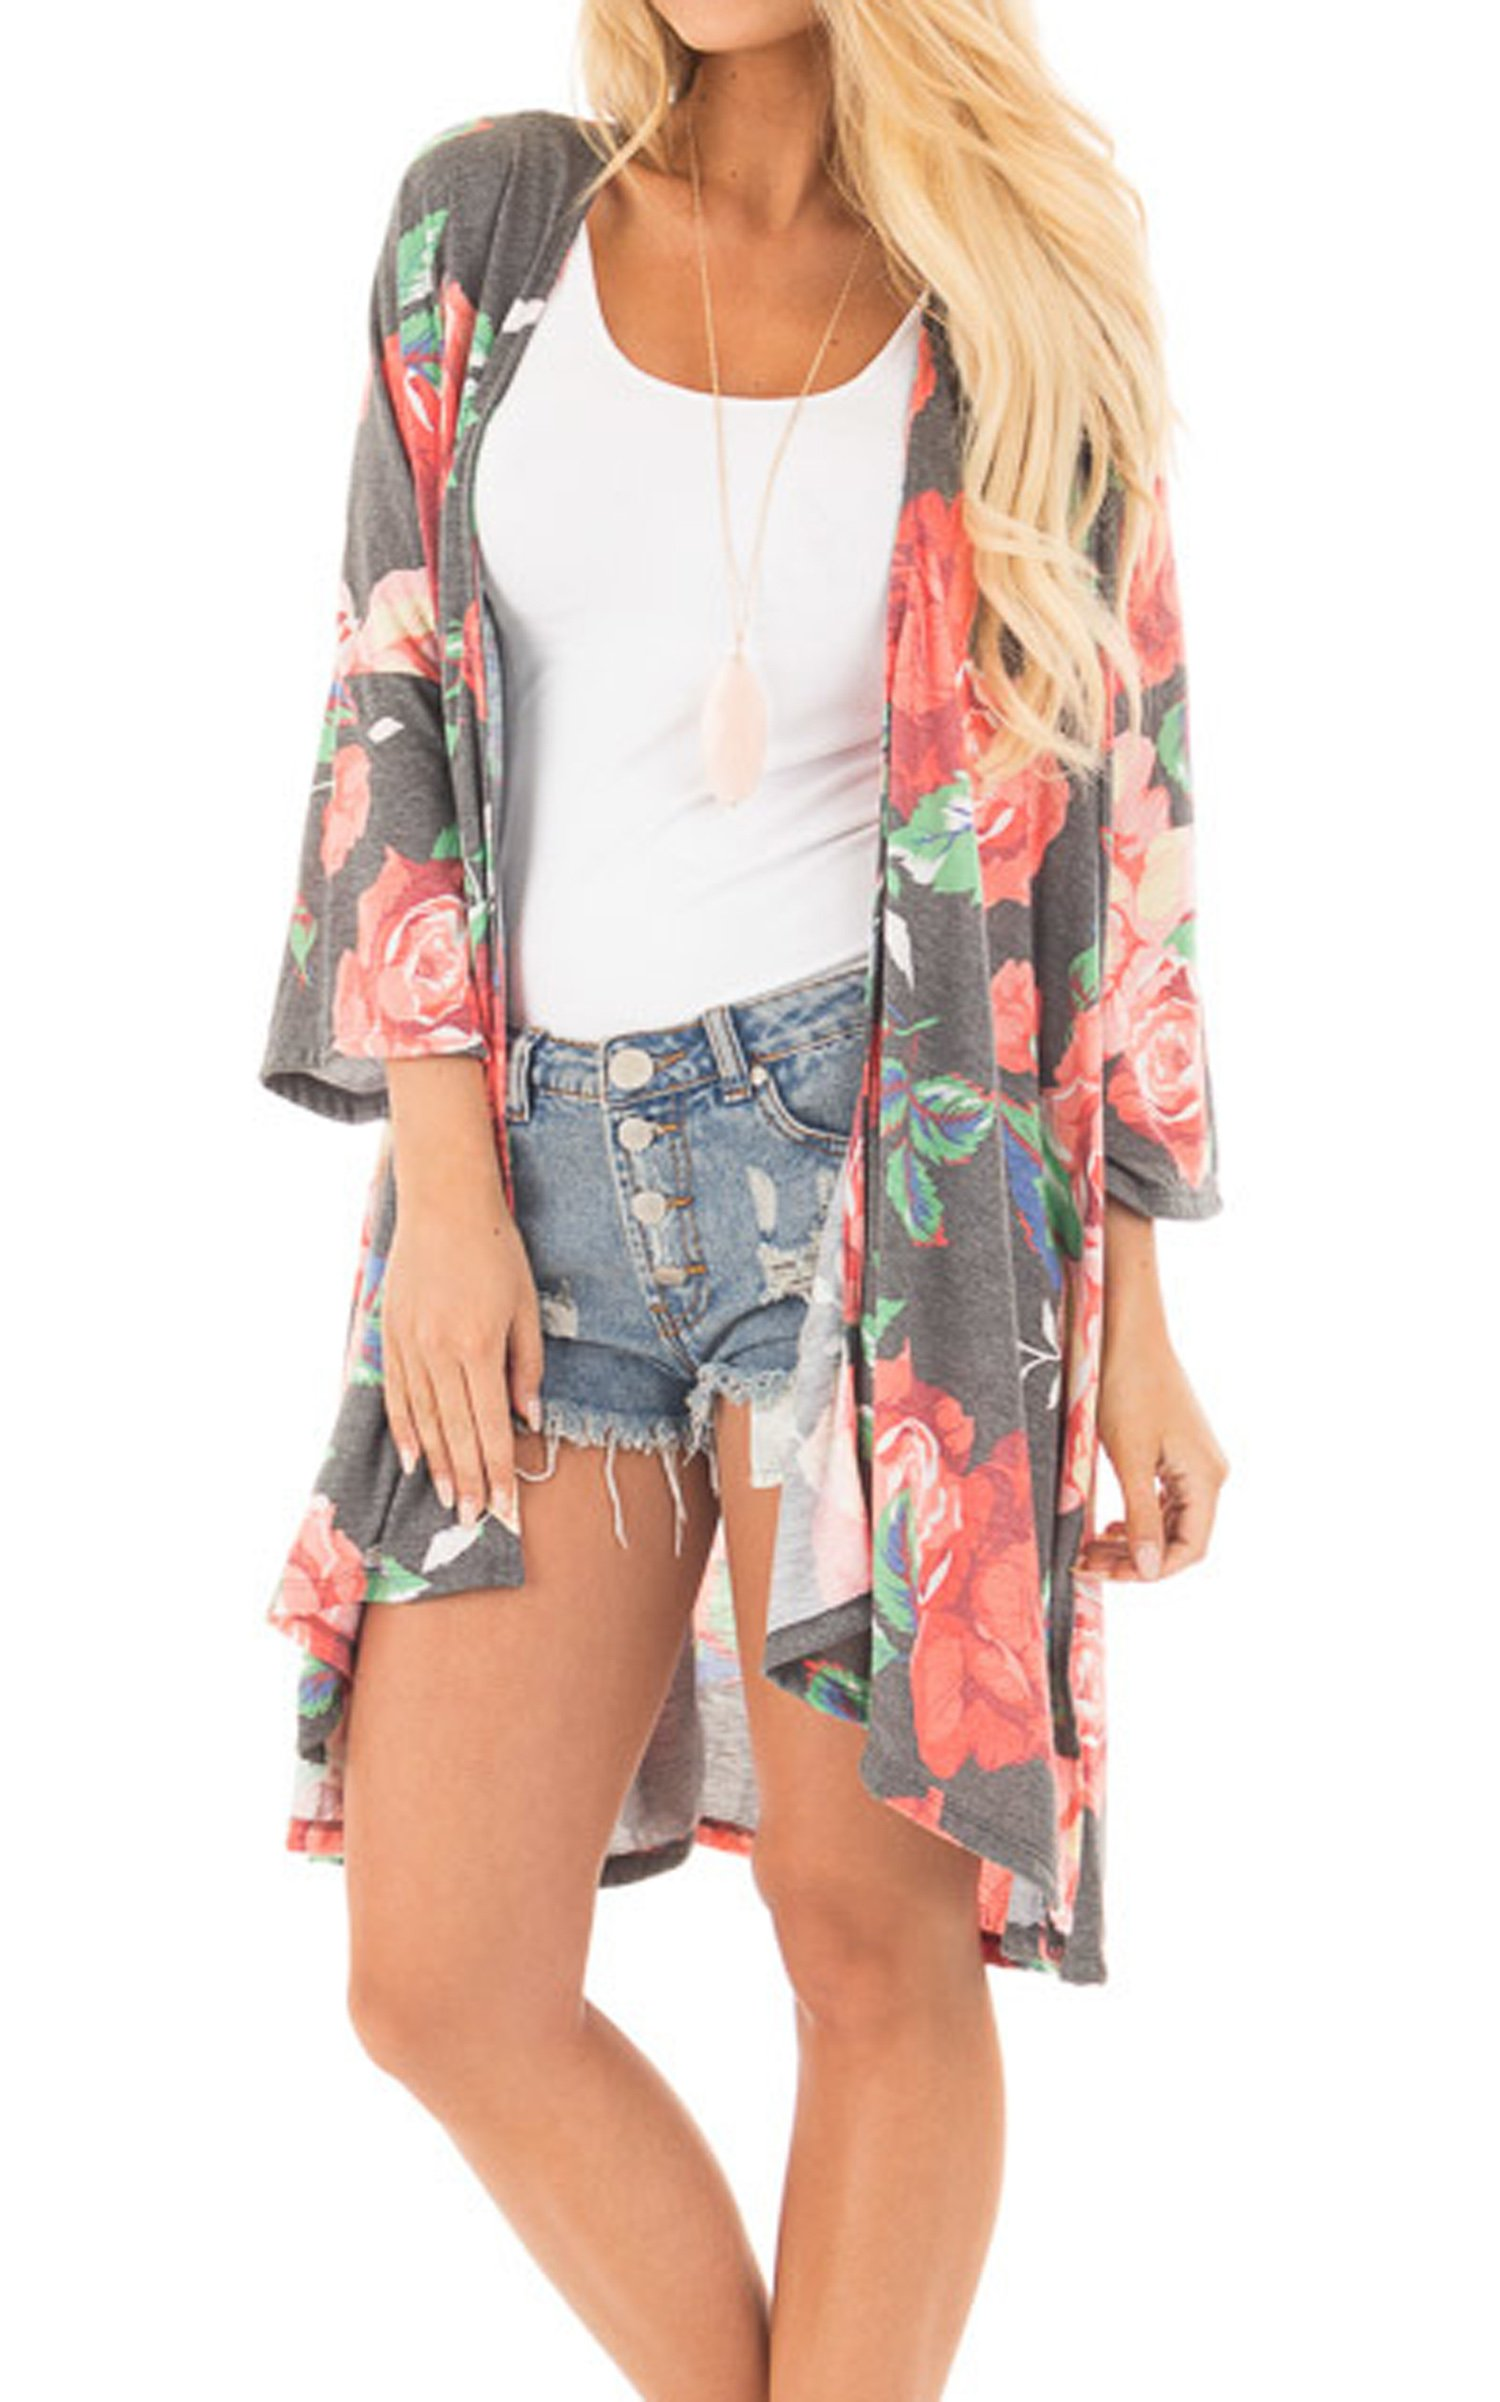 Hibluco Women's Casual 3/4 Sleeve Boho Floral Printed Open Front Cardigan (Grey, Small)